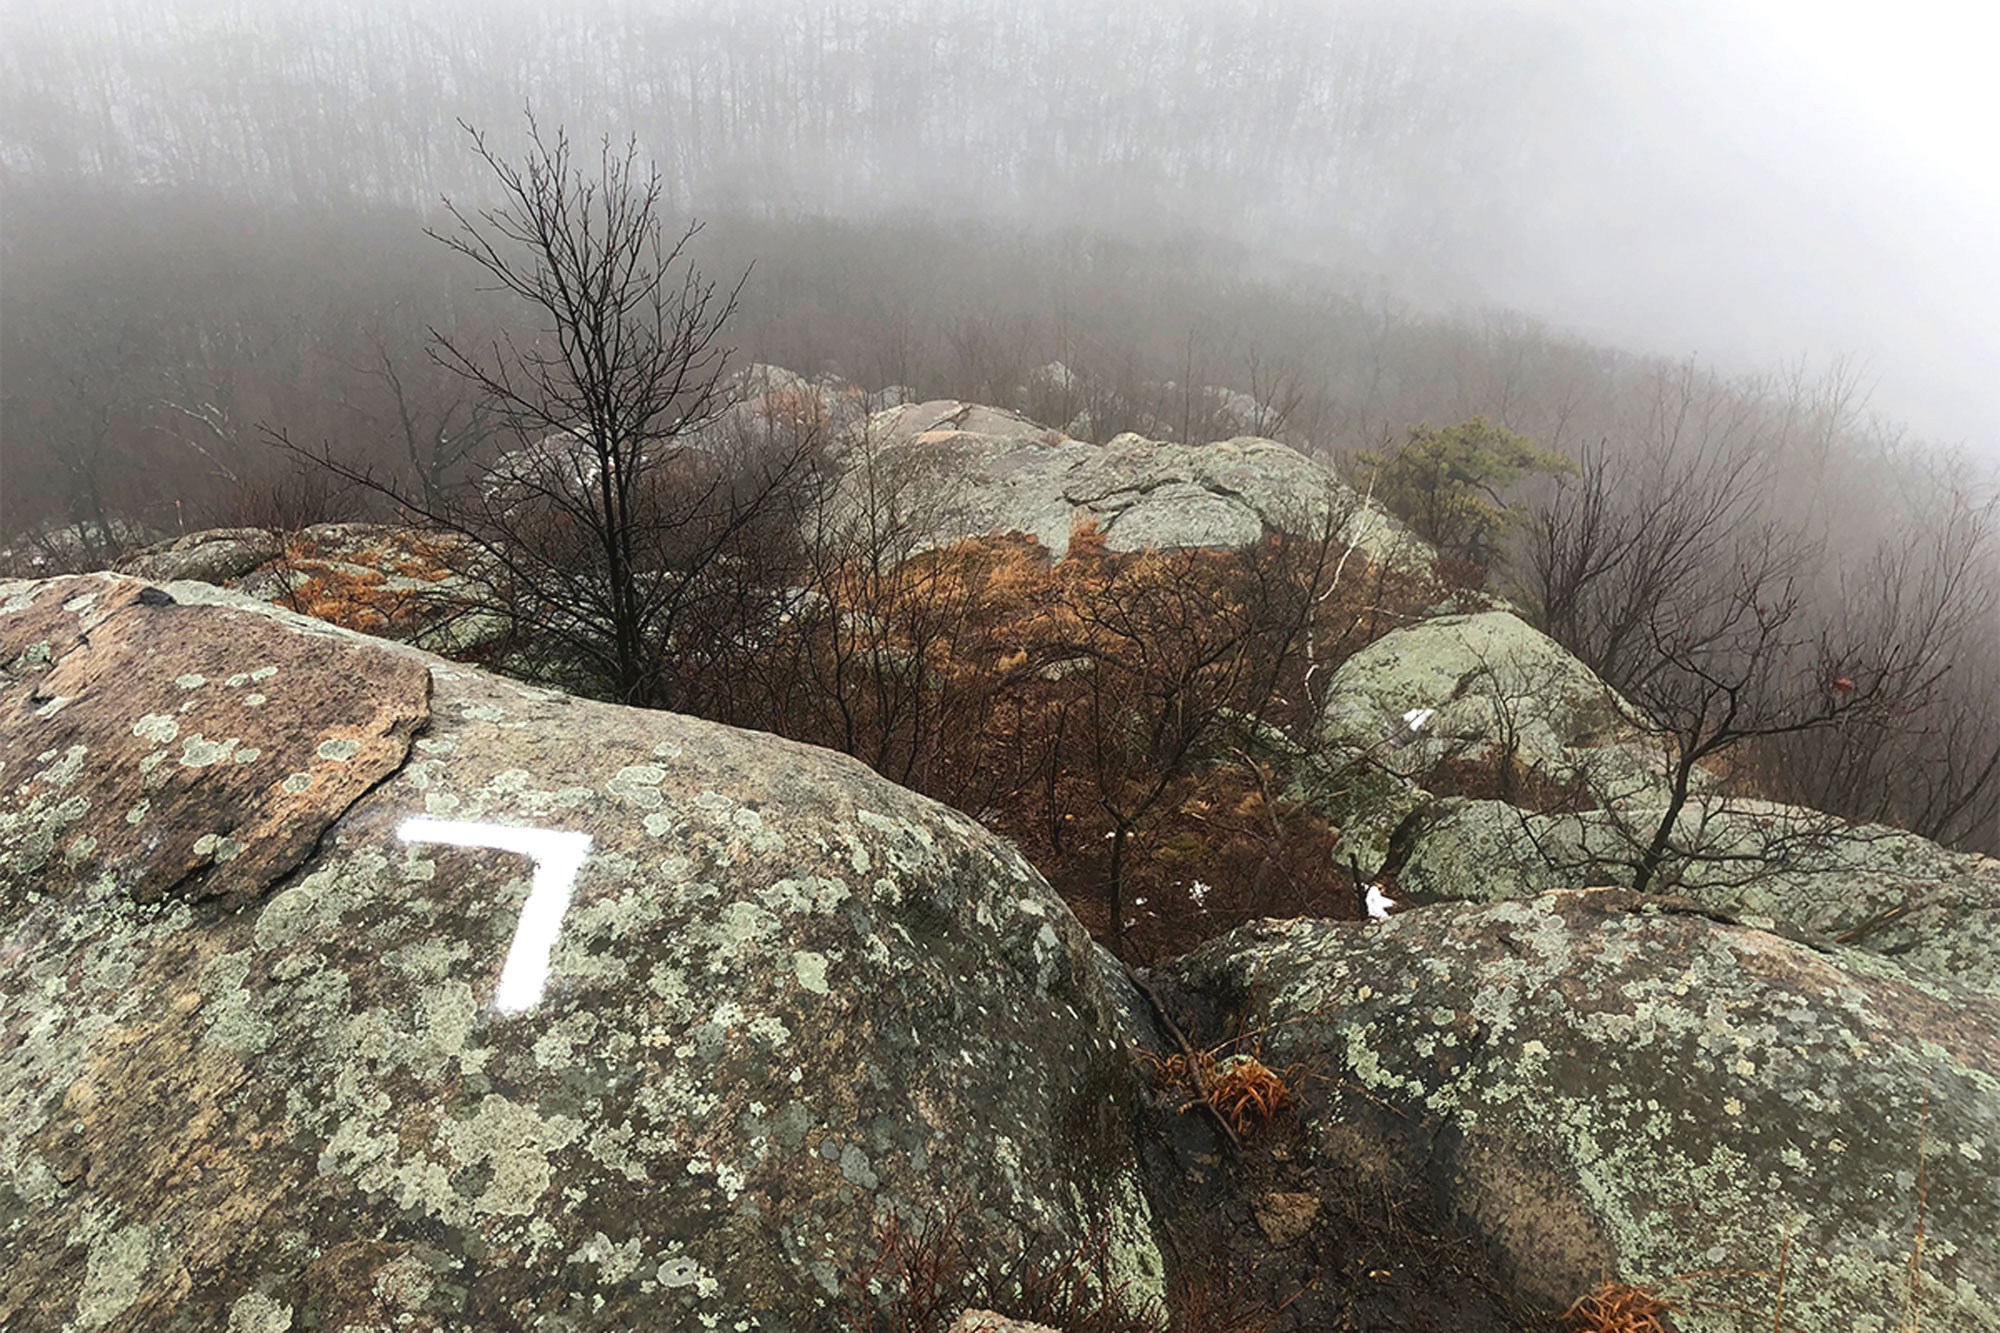 A foggy day in late fall, looking back over the Breakneck Ridge Trail.